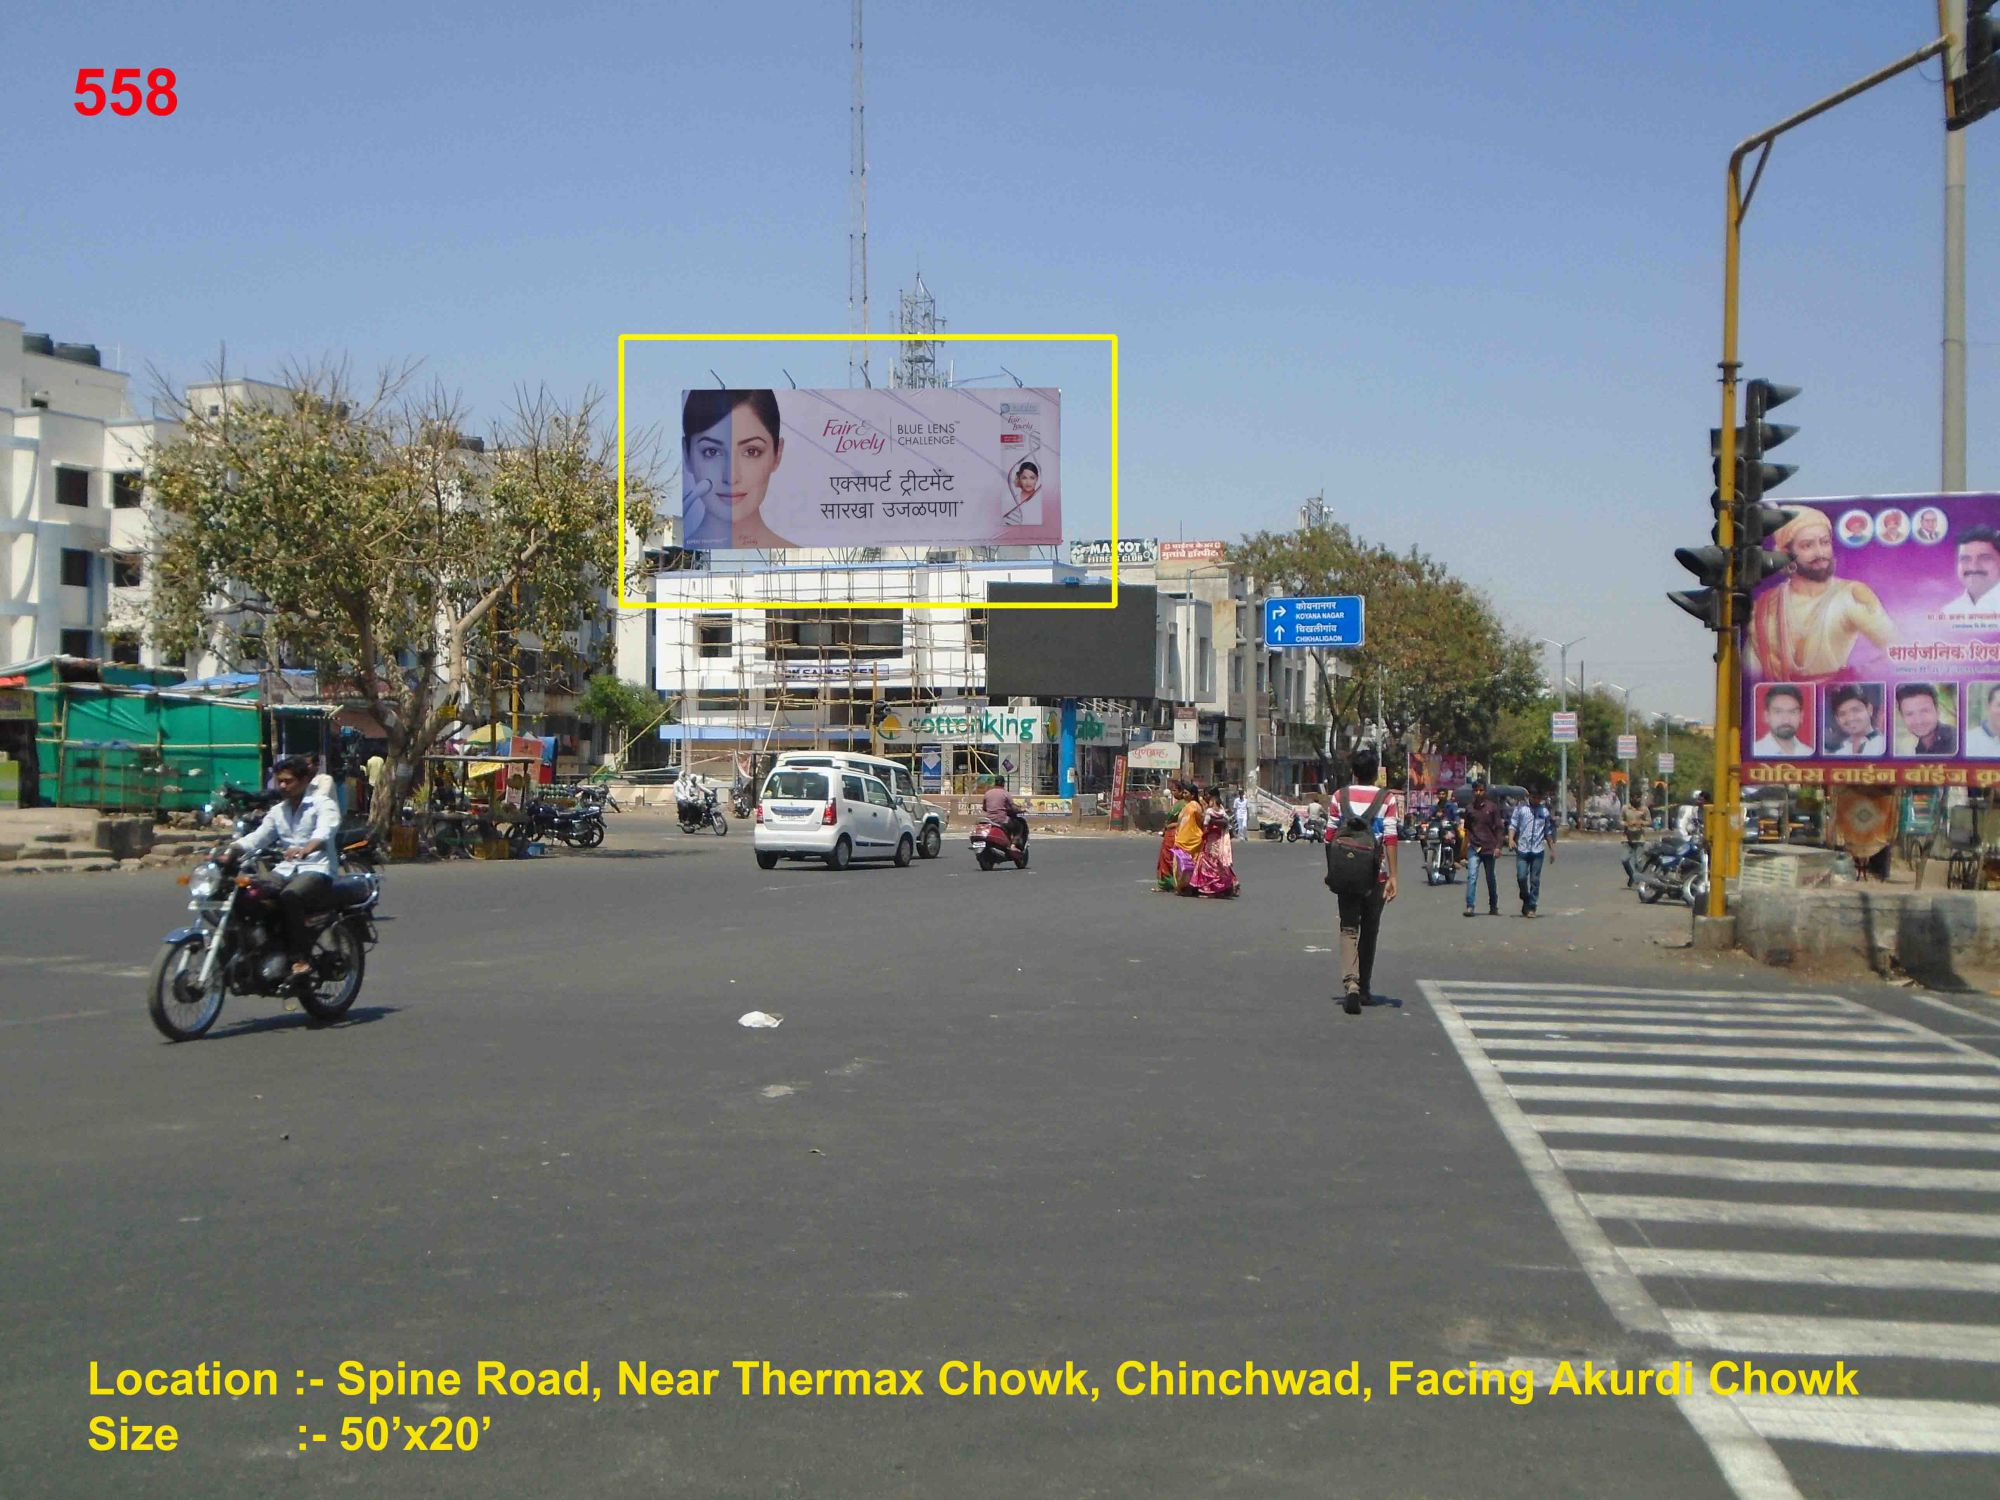 Spine Road,Nr. Thermax Chowk, Chinchawad, Pune